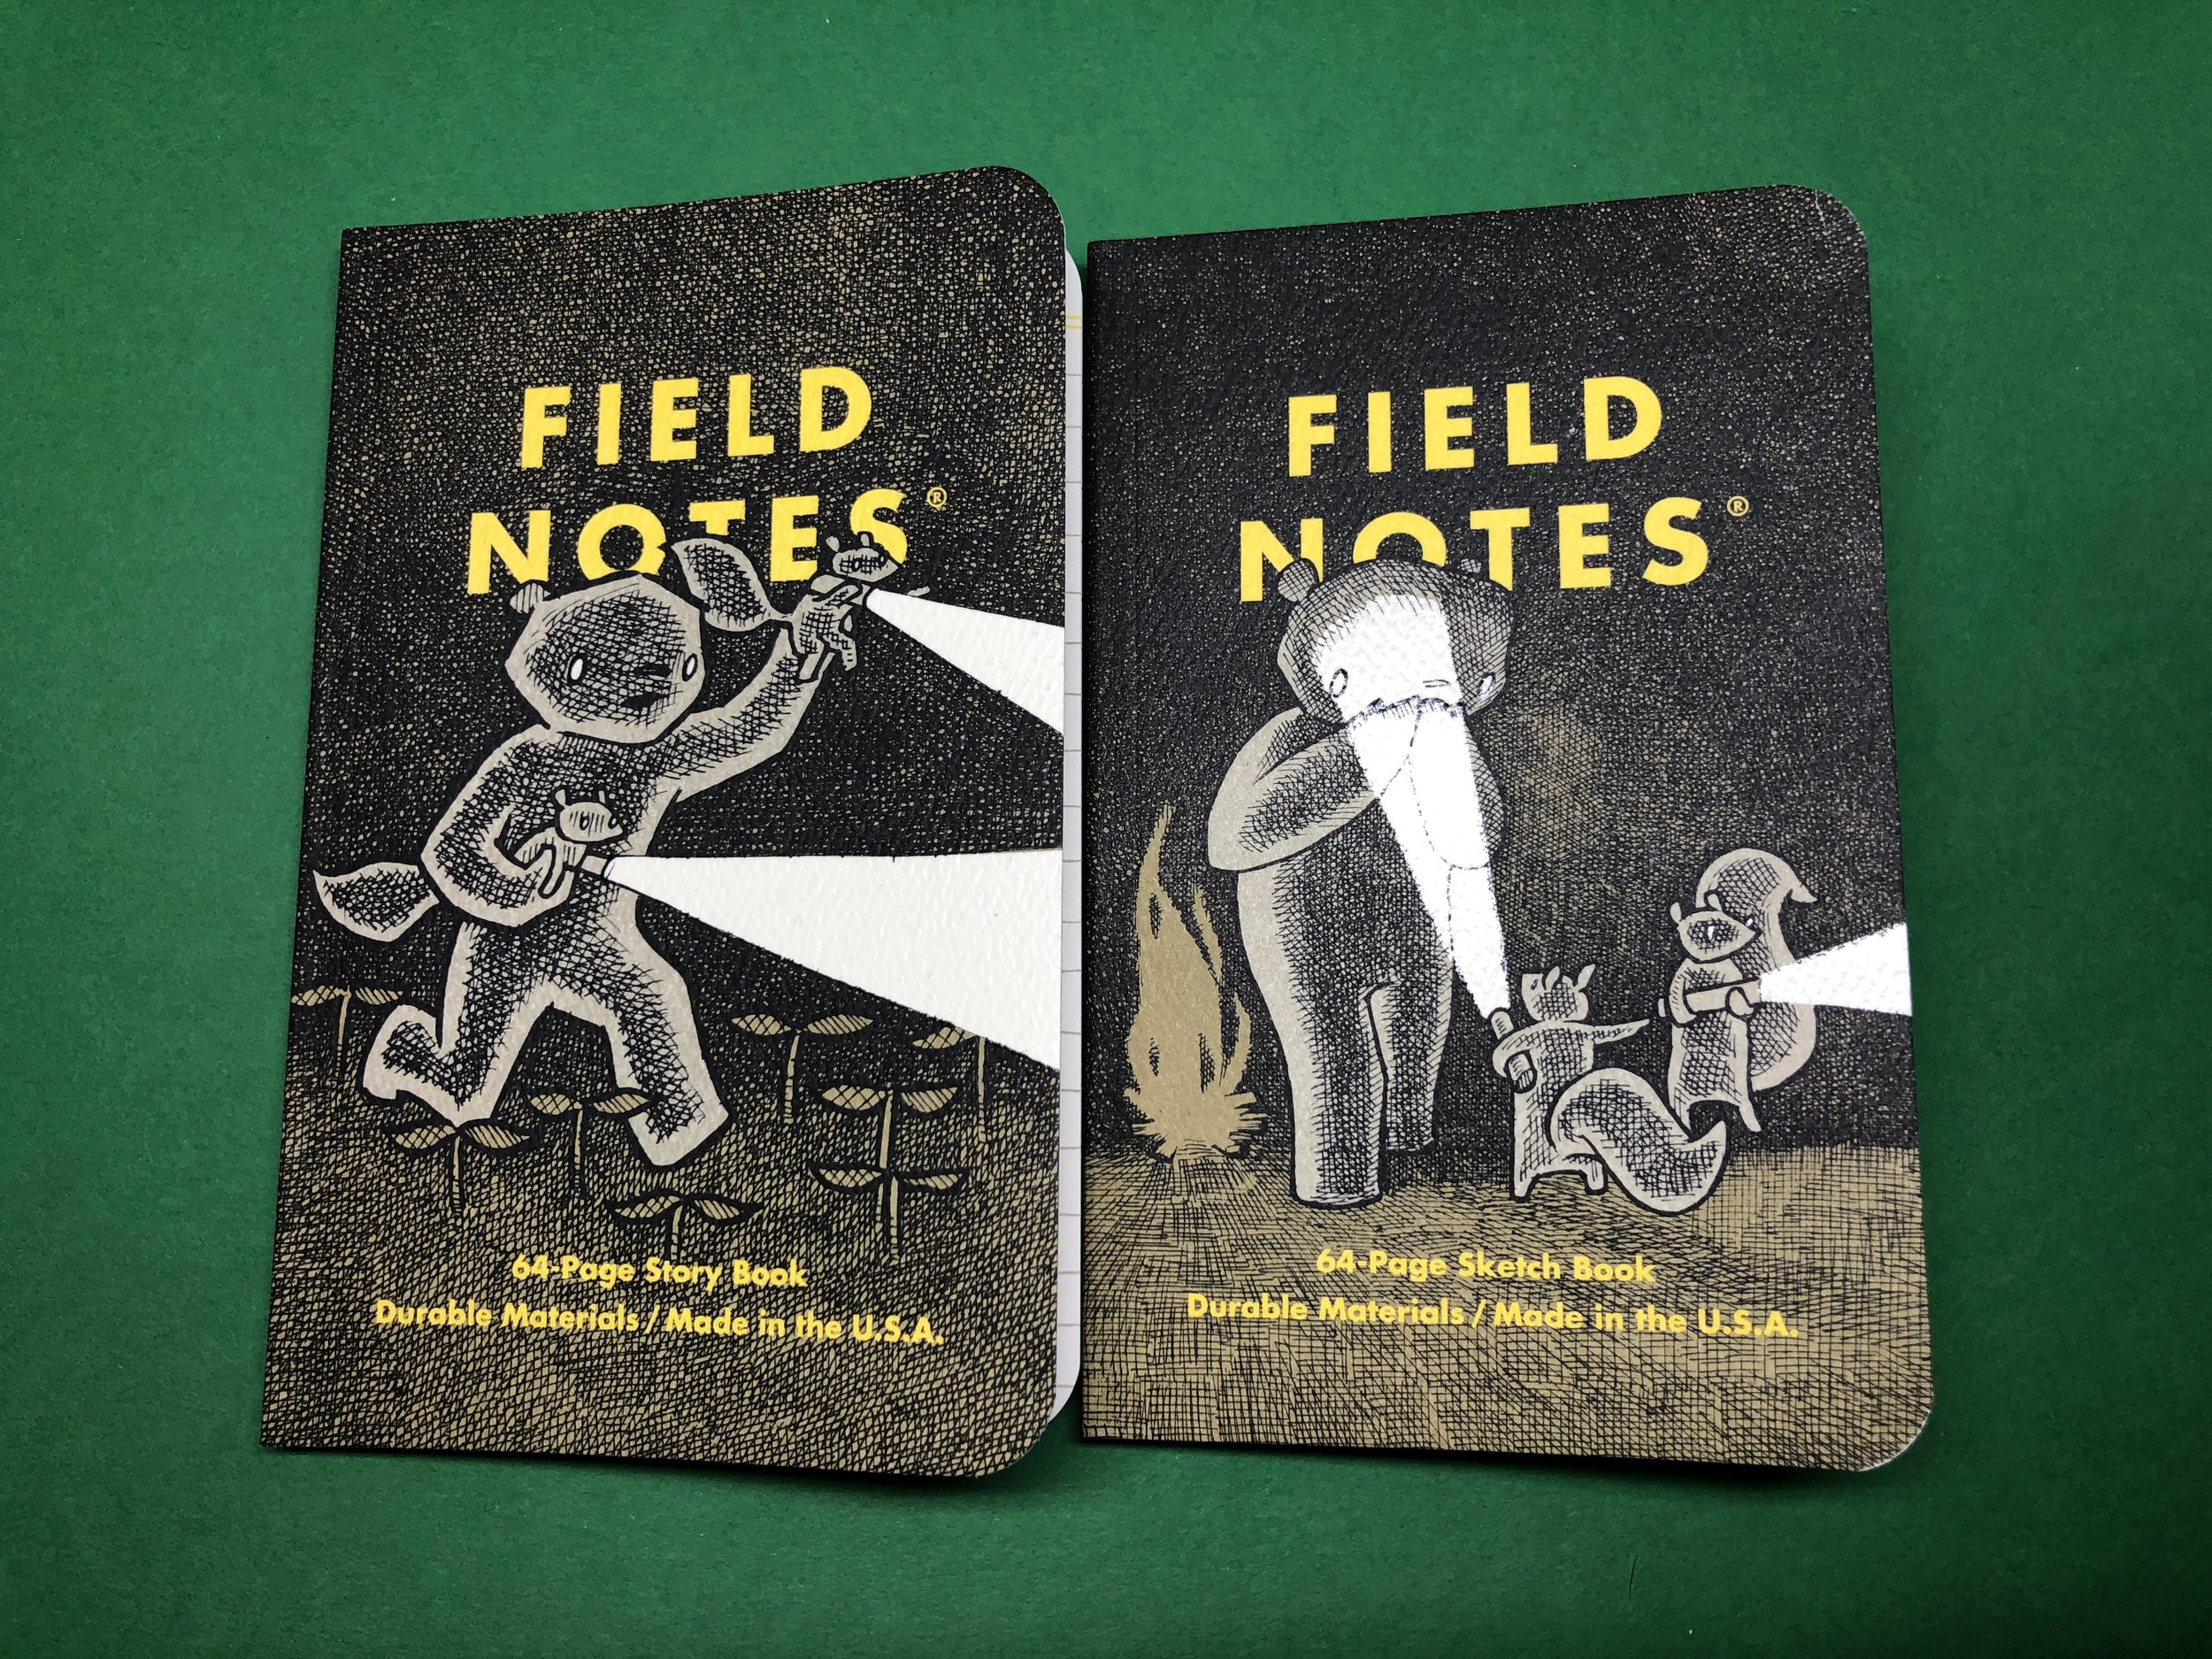 field-notes-haxley-1.jpg